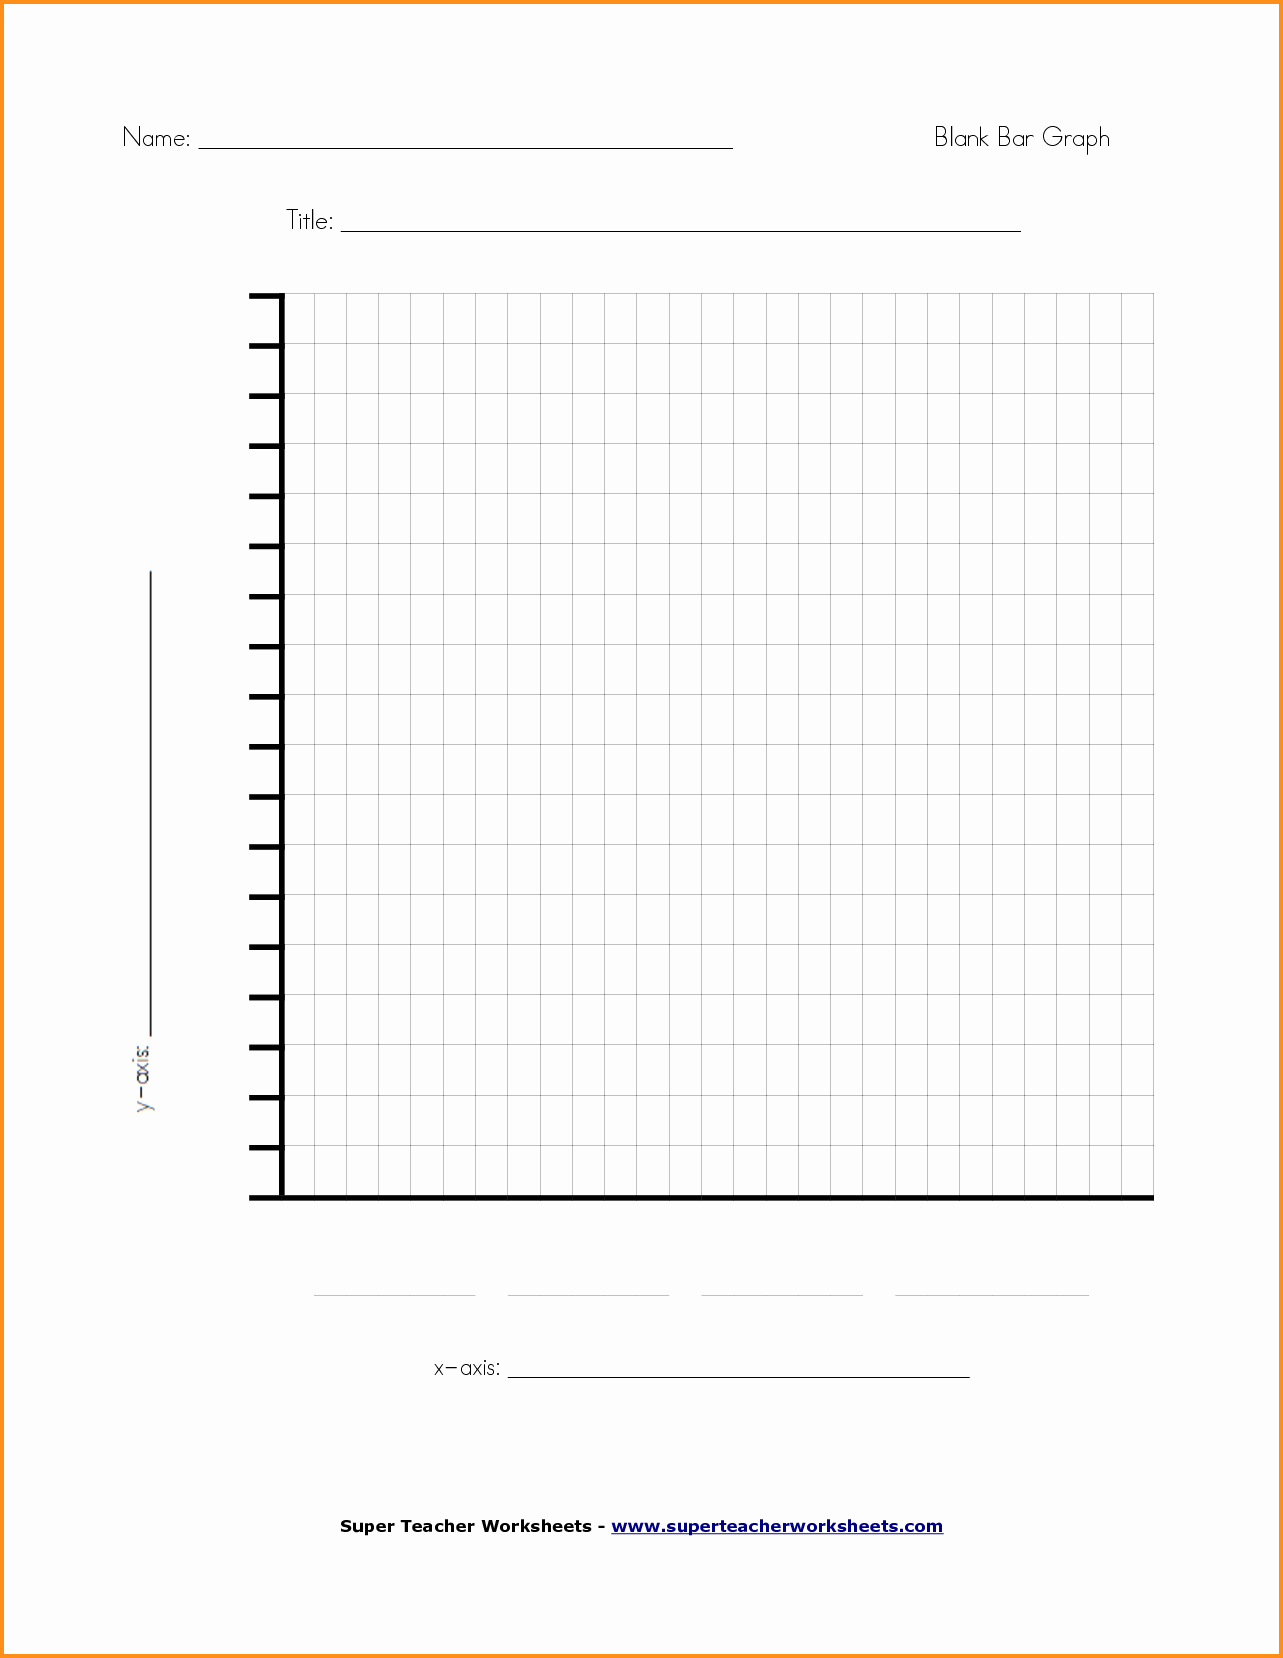 Blank Bar Graph Template Awesome Blank Bar Graph Templates Portablegasgrillweber